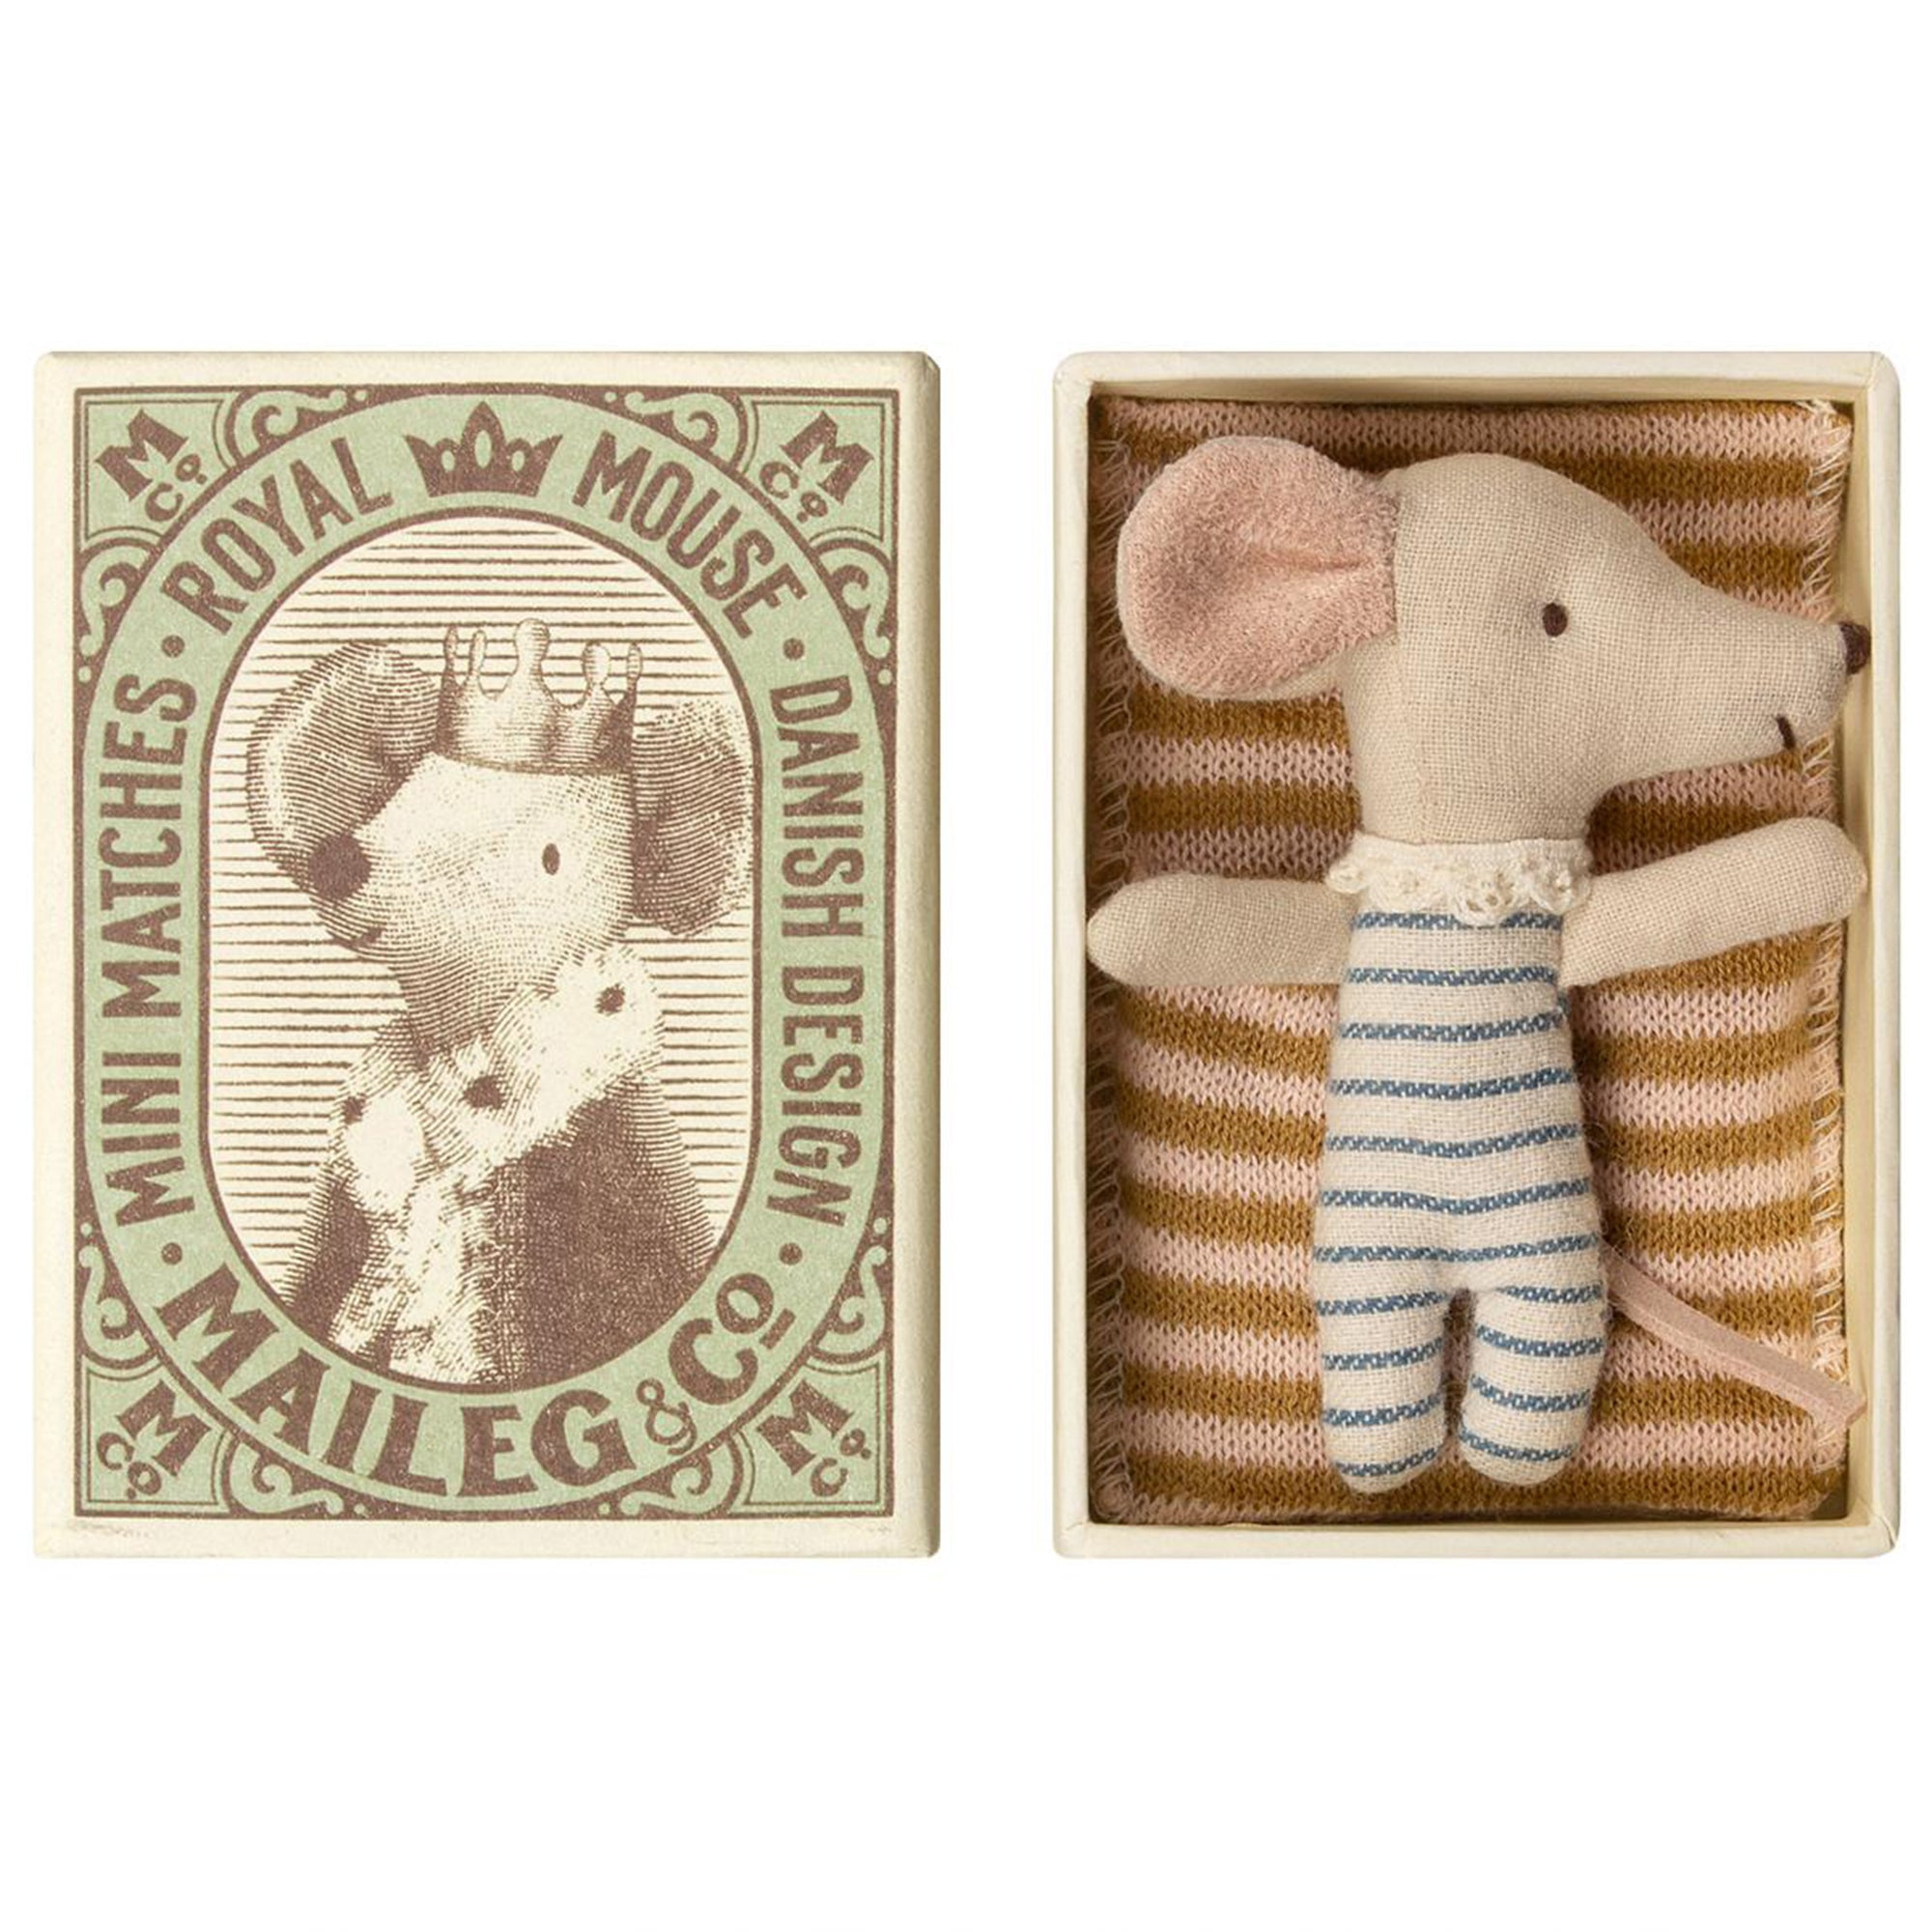 Maileg Sleepy Wakey Mouse Boy In Box - Scandi Minimal